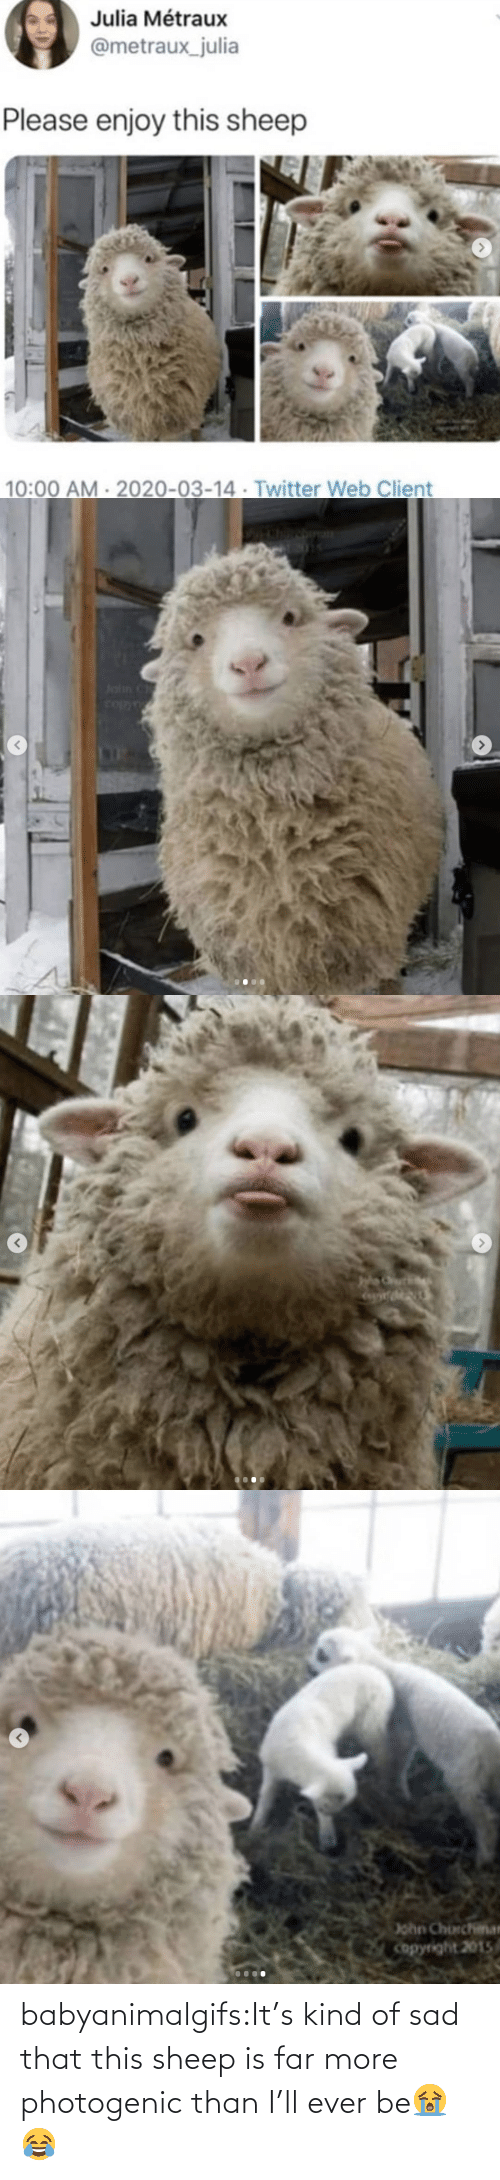 Kind: babyanimalgifs:It's kind of sad that this sheep is far more photogenic than I'll ever be😭😂